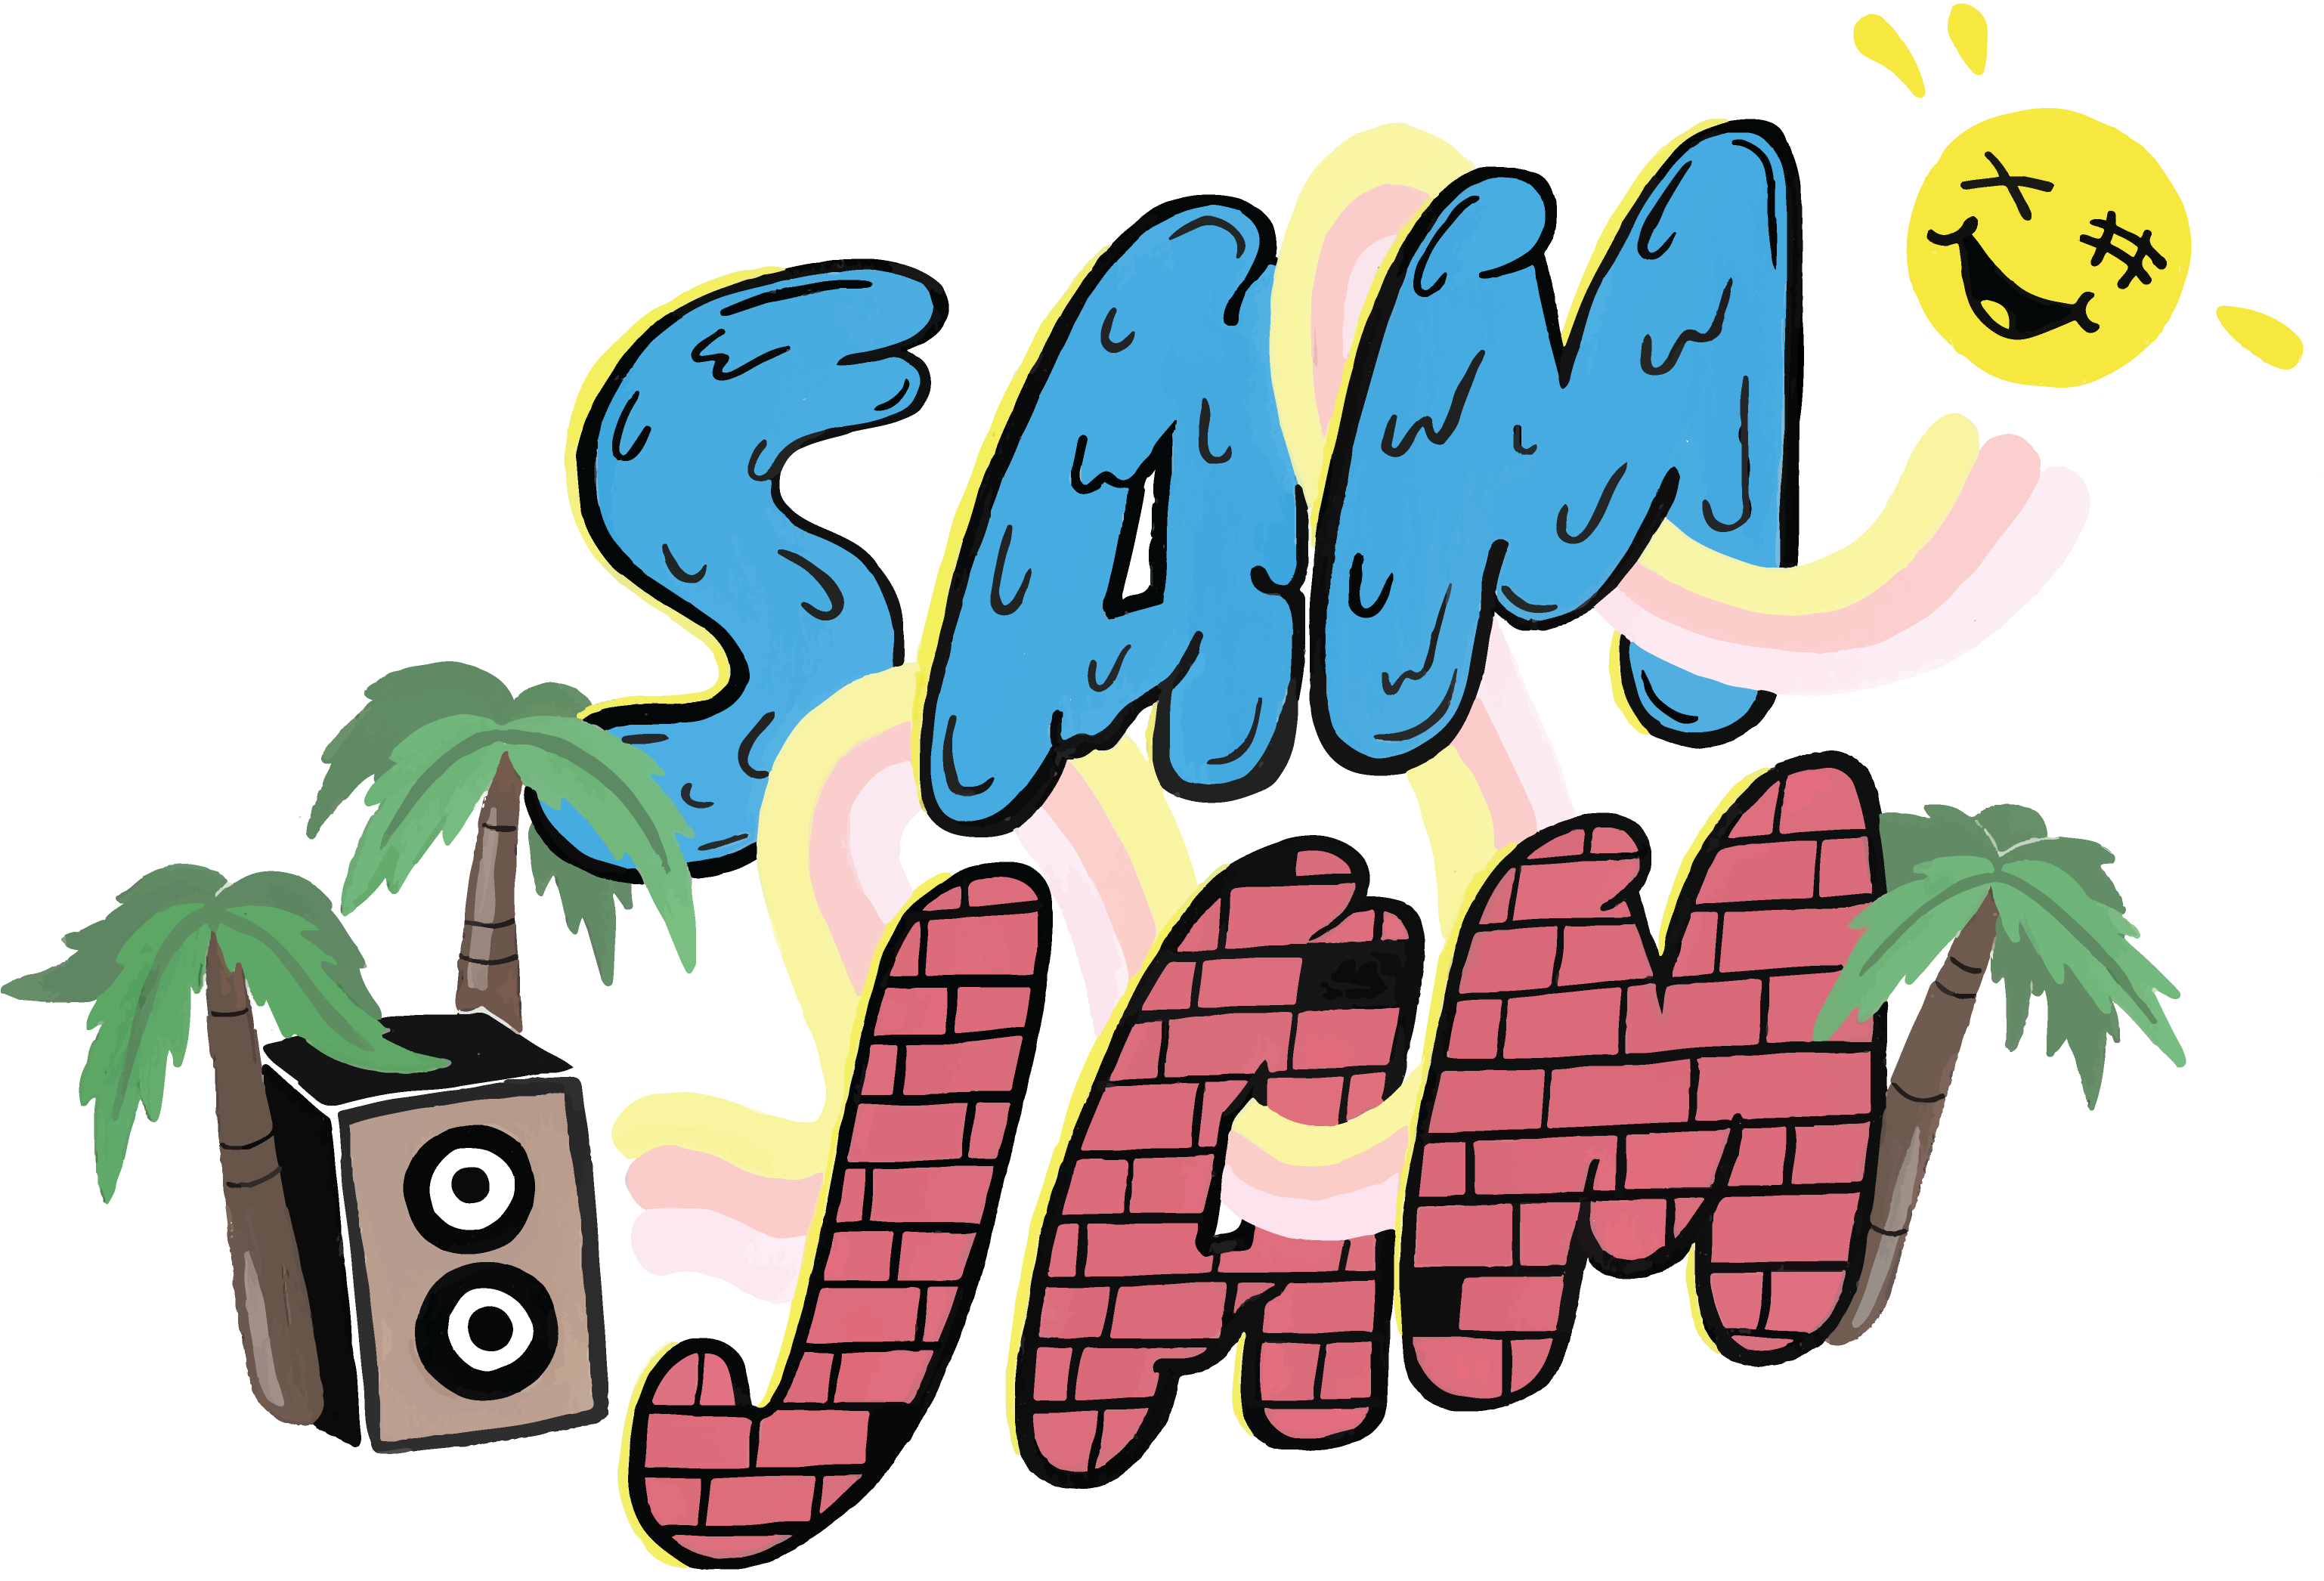 Logo Design For Sam Jam Block Party Clipart Full Size Clipart 462729 Pinclipart